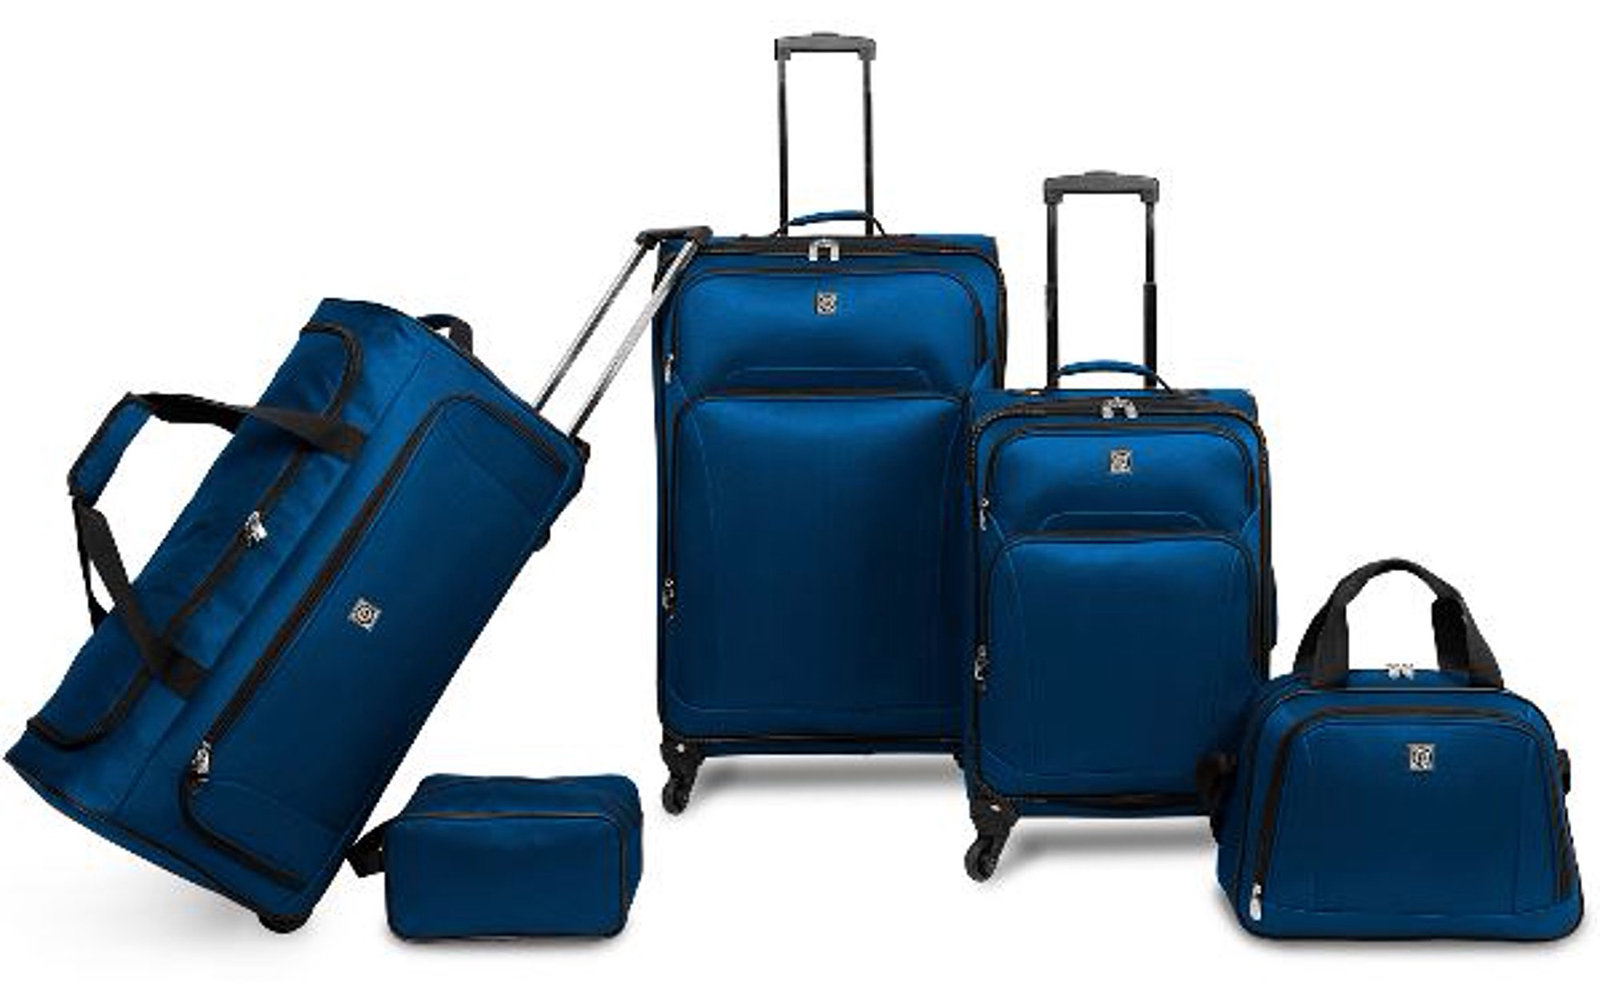 Protege 5 Piece Luggage Set